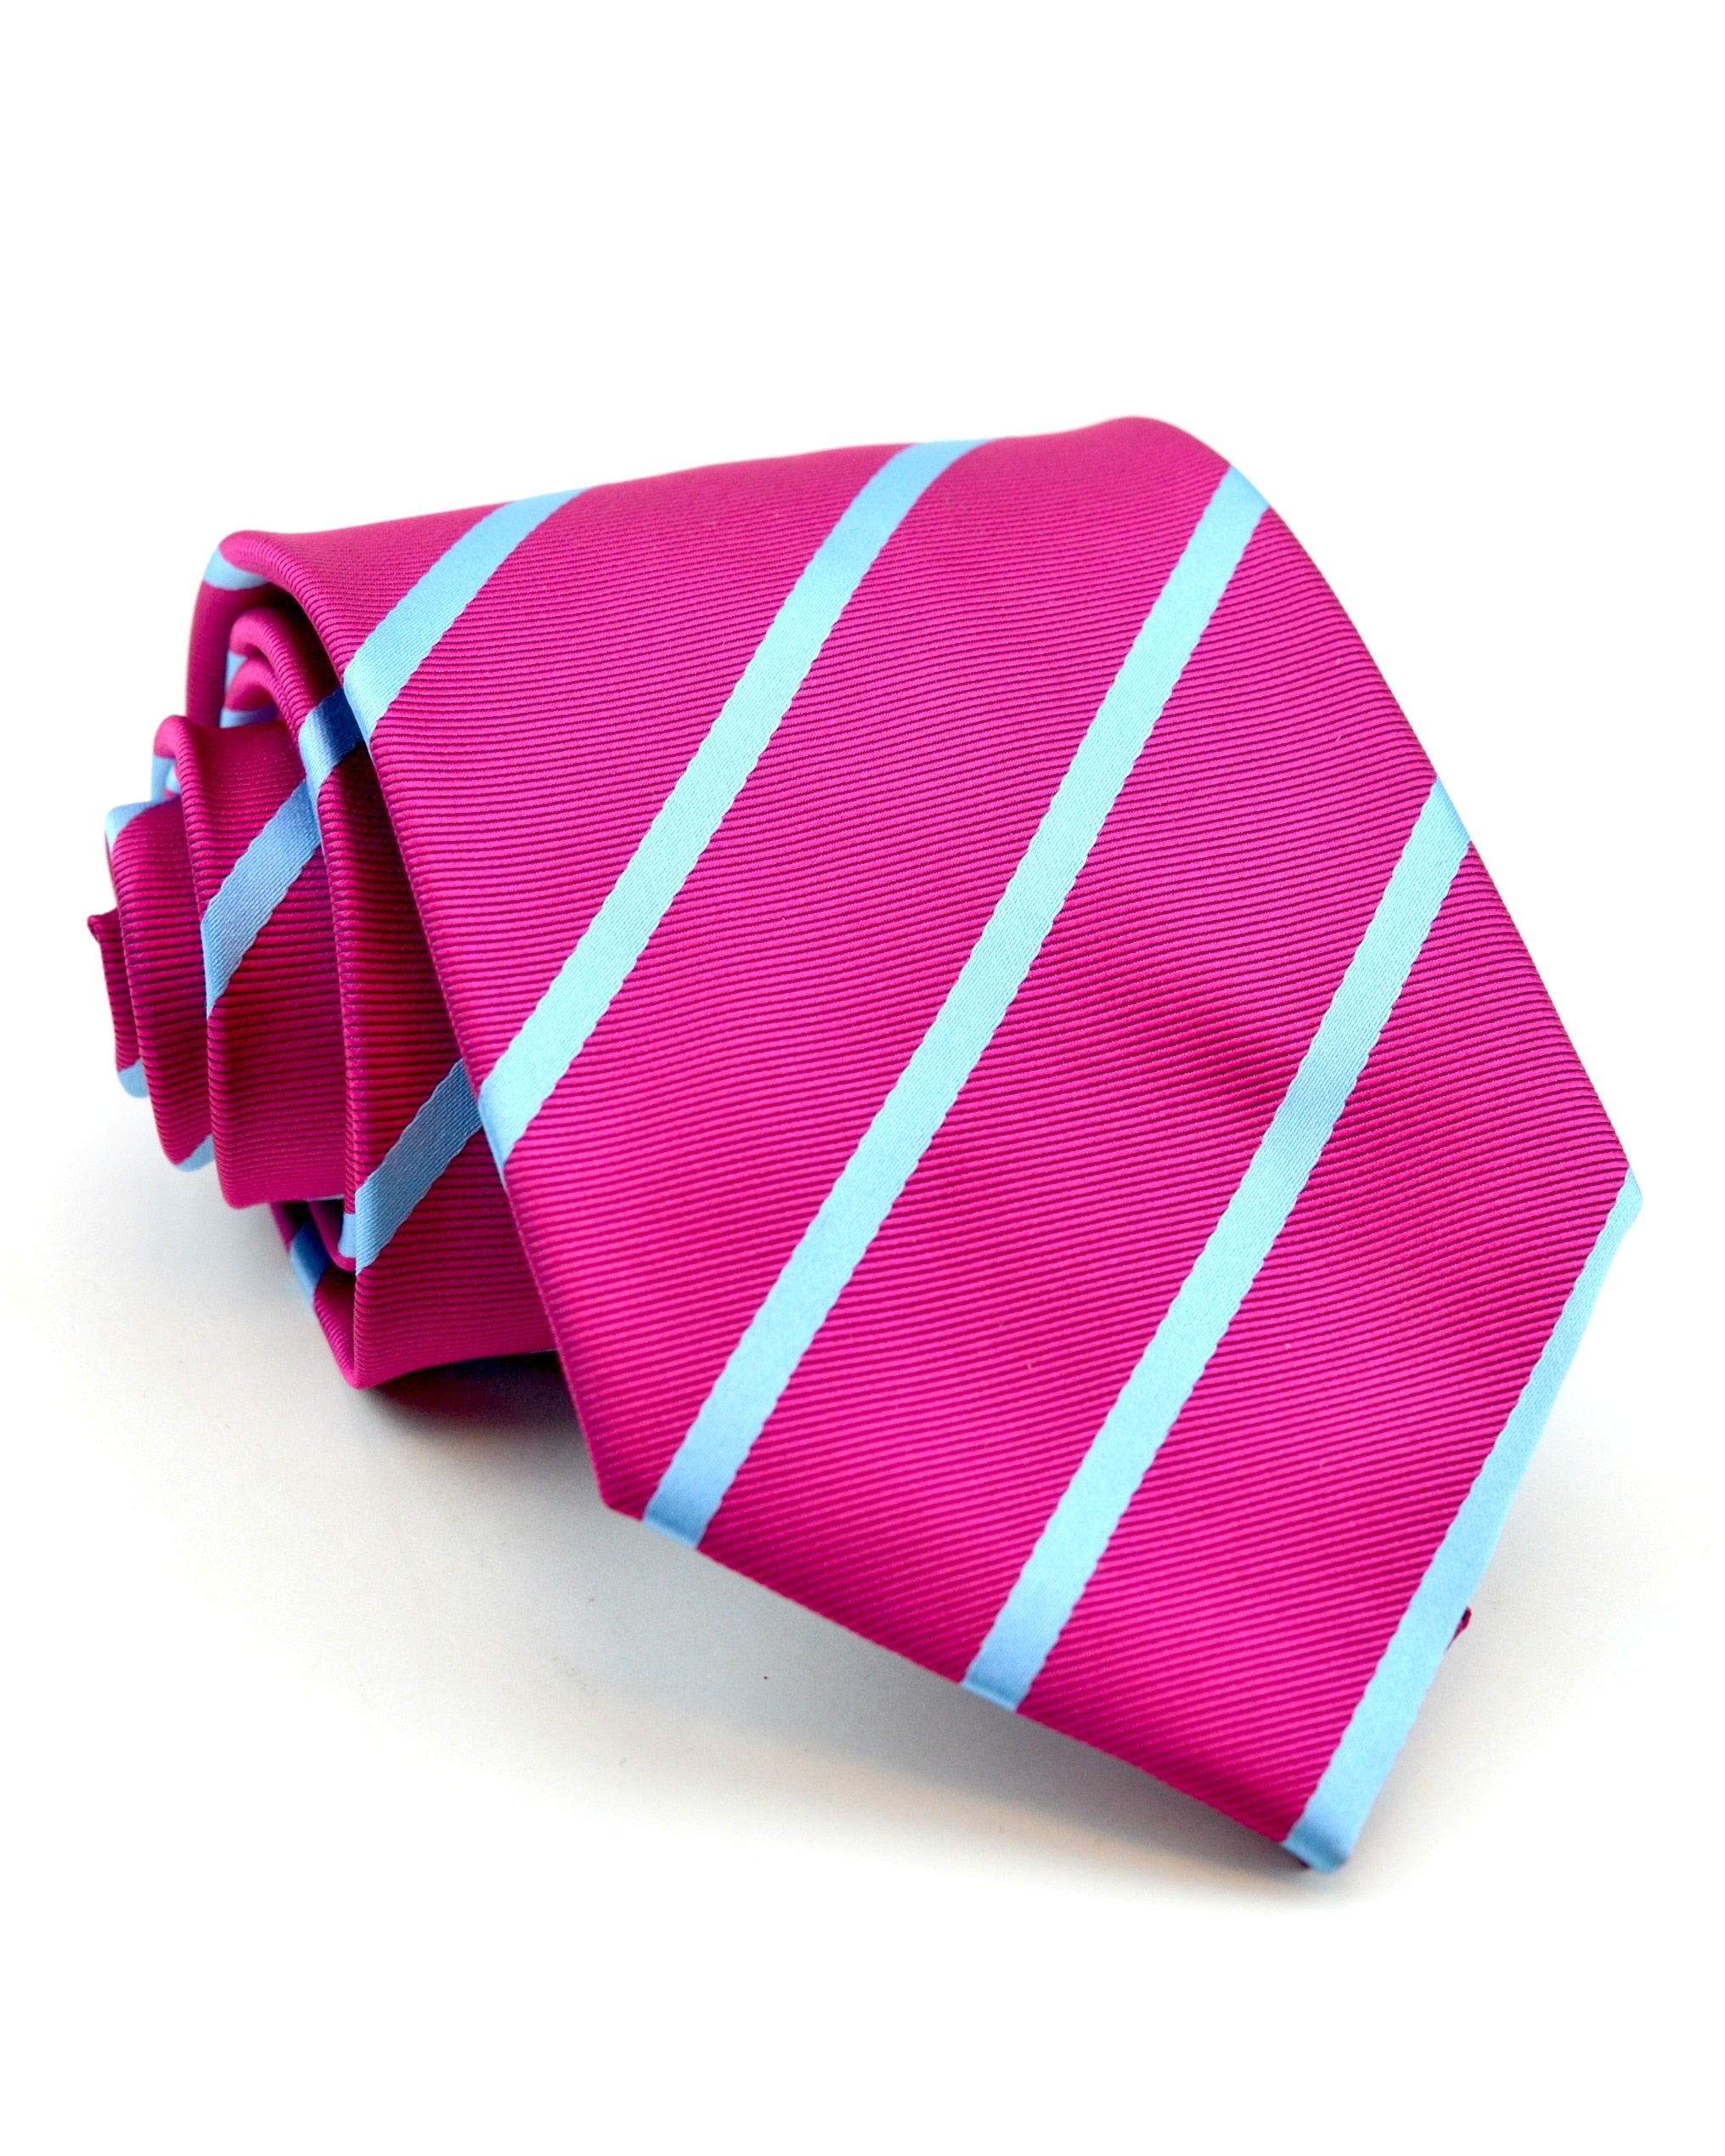 watermelon-and-blue-strip-dad-tie.jpg